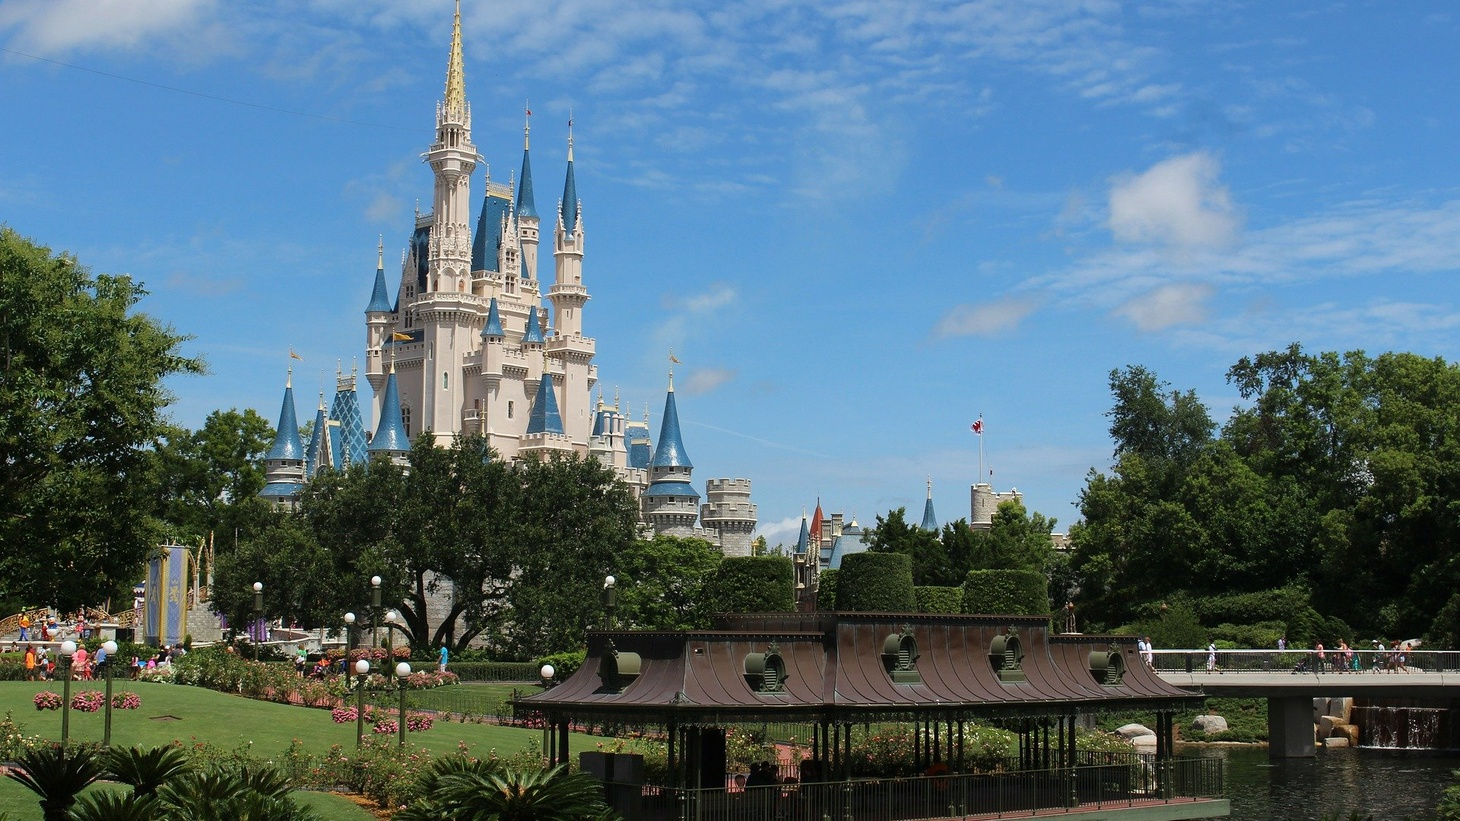 Walt Disney World is still scheduled to reopen on July 11, but employees who are members of Actors' Equity have rejected the park's reopening plans because Disney is not providing COVID-19 testing.